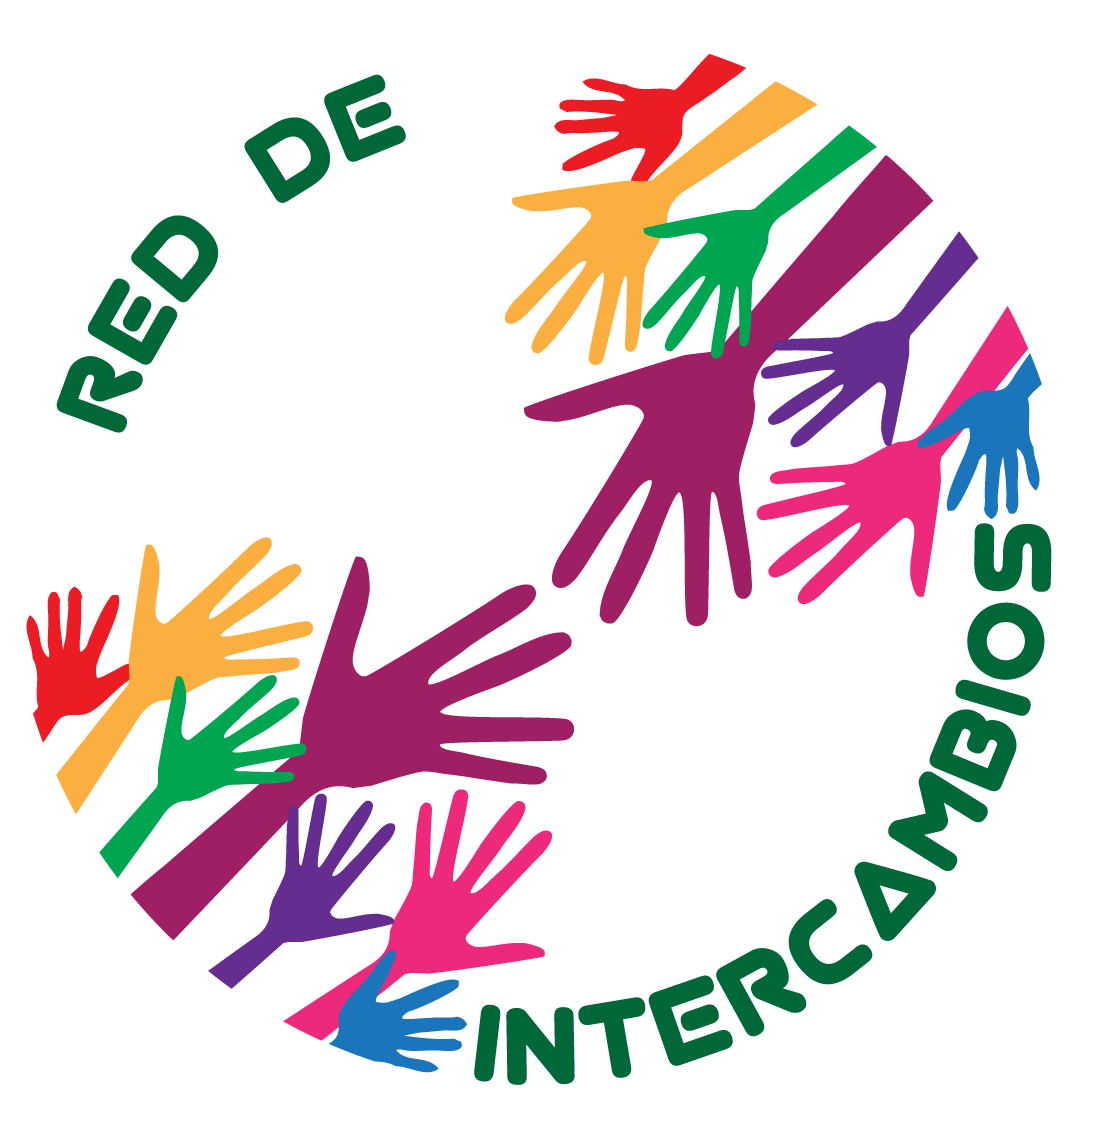 Logo Red Intercambios